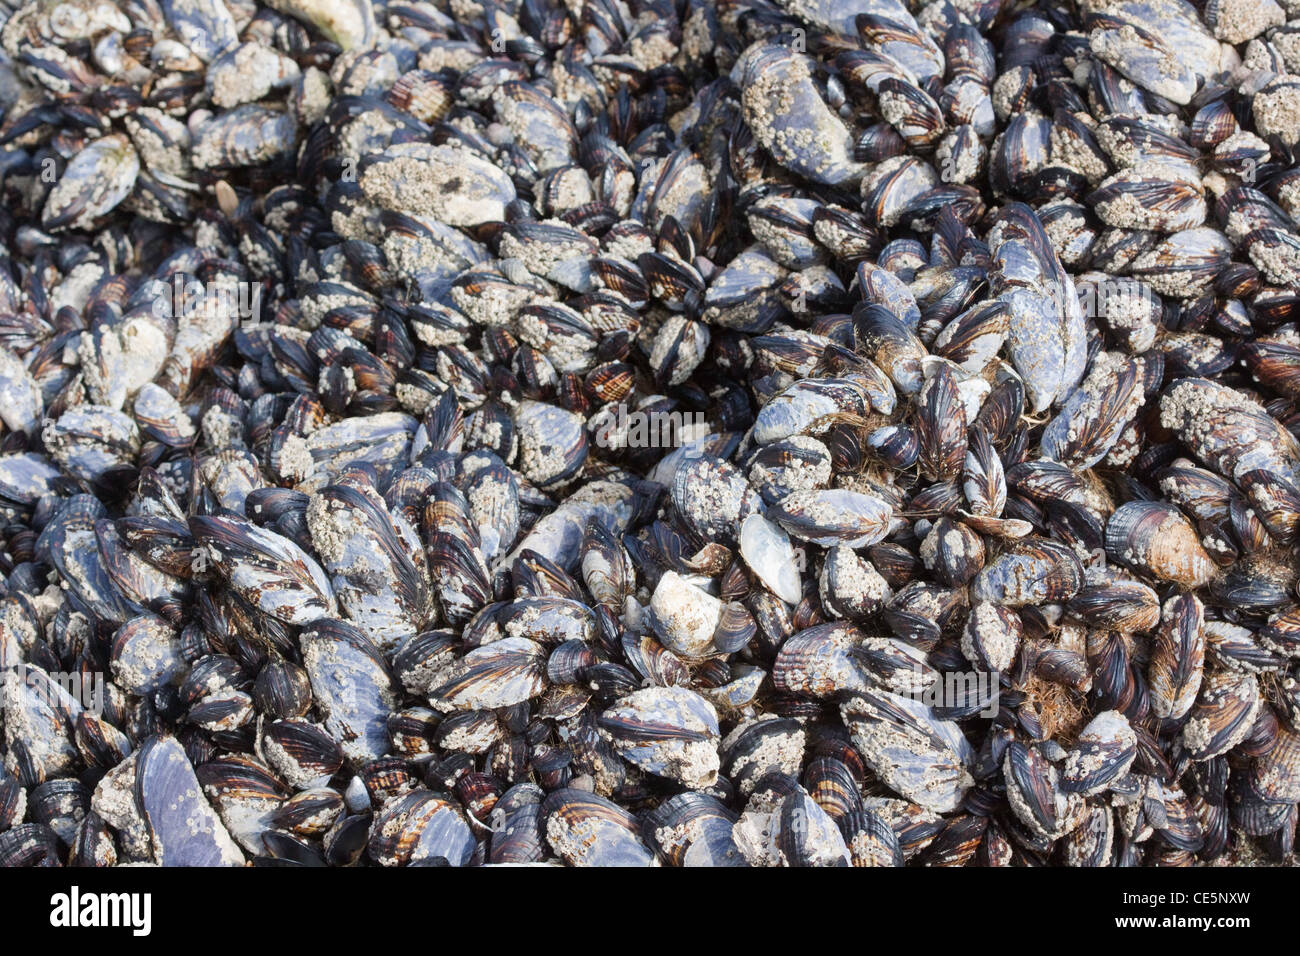 California Mussel Mytilus californianus Newport, Oregon, United States 28 April Typical grouping in inter-tidal - Stock Image